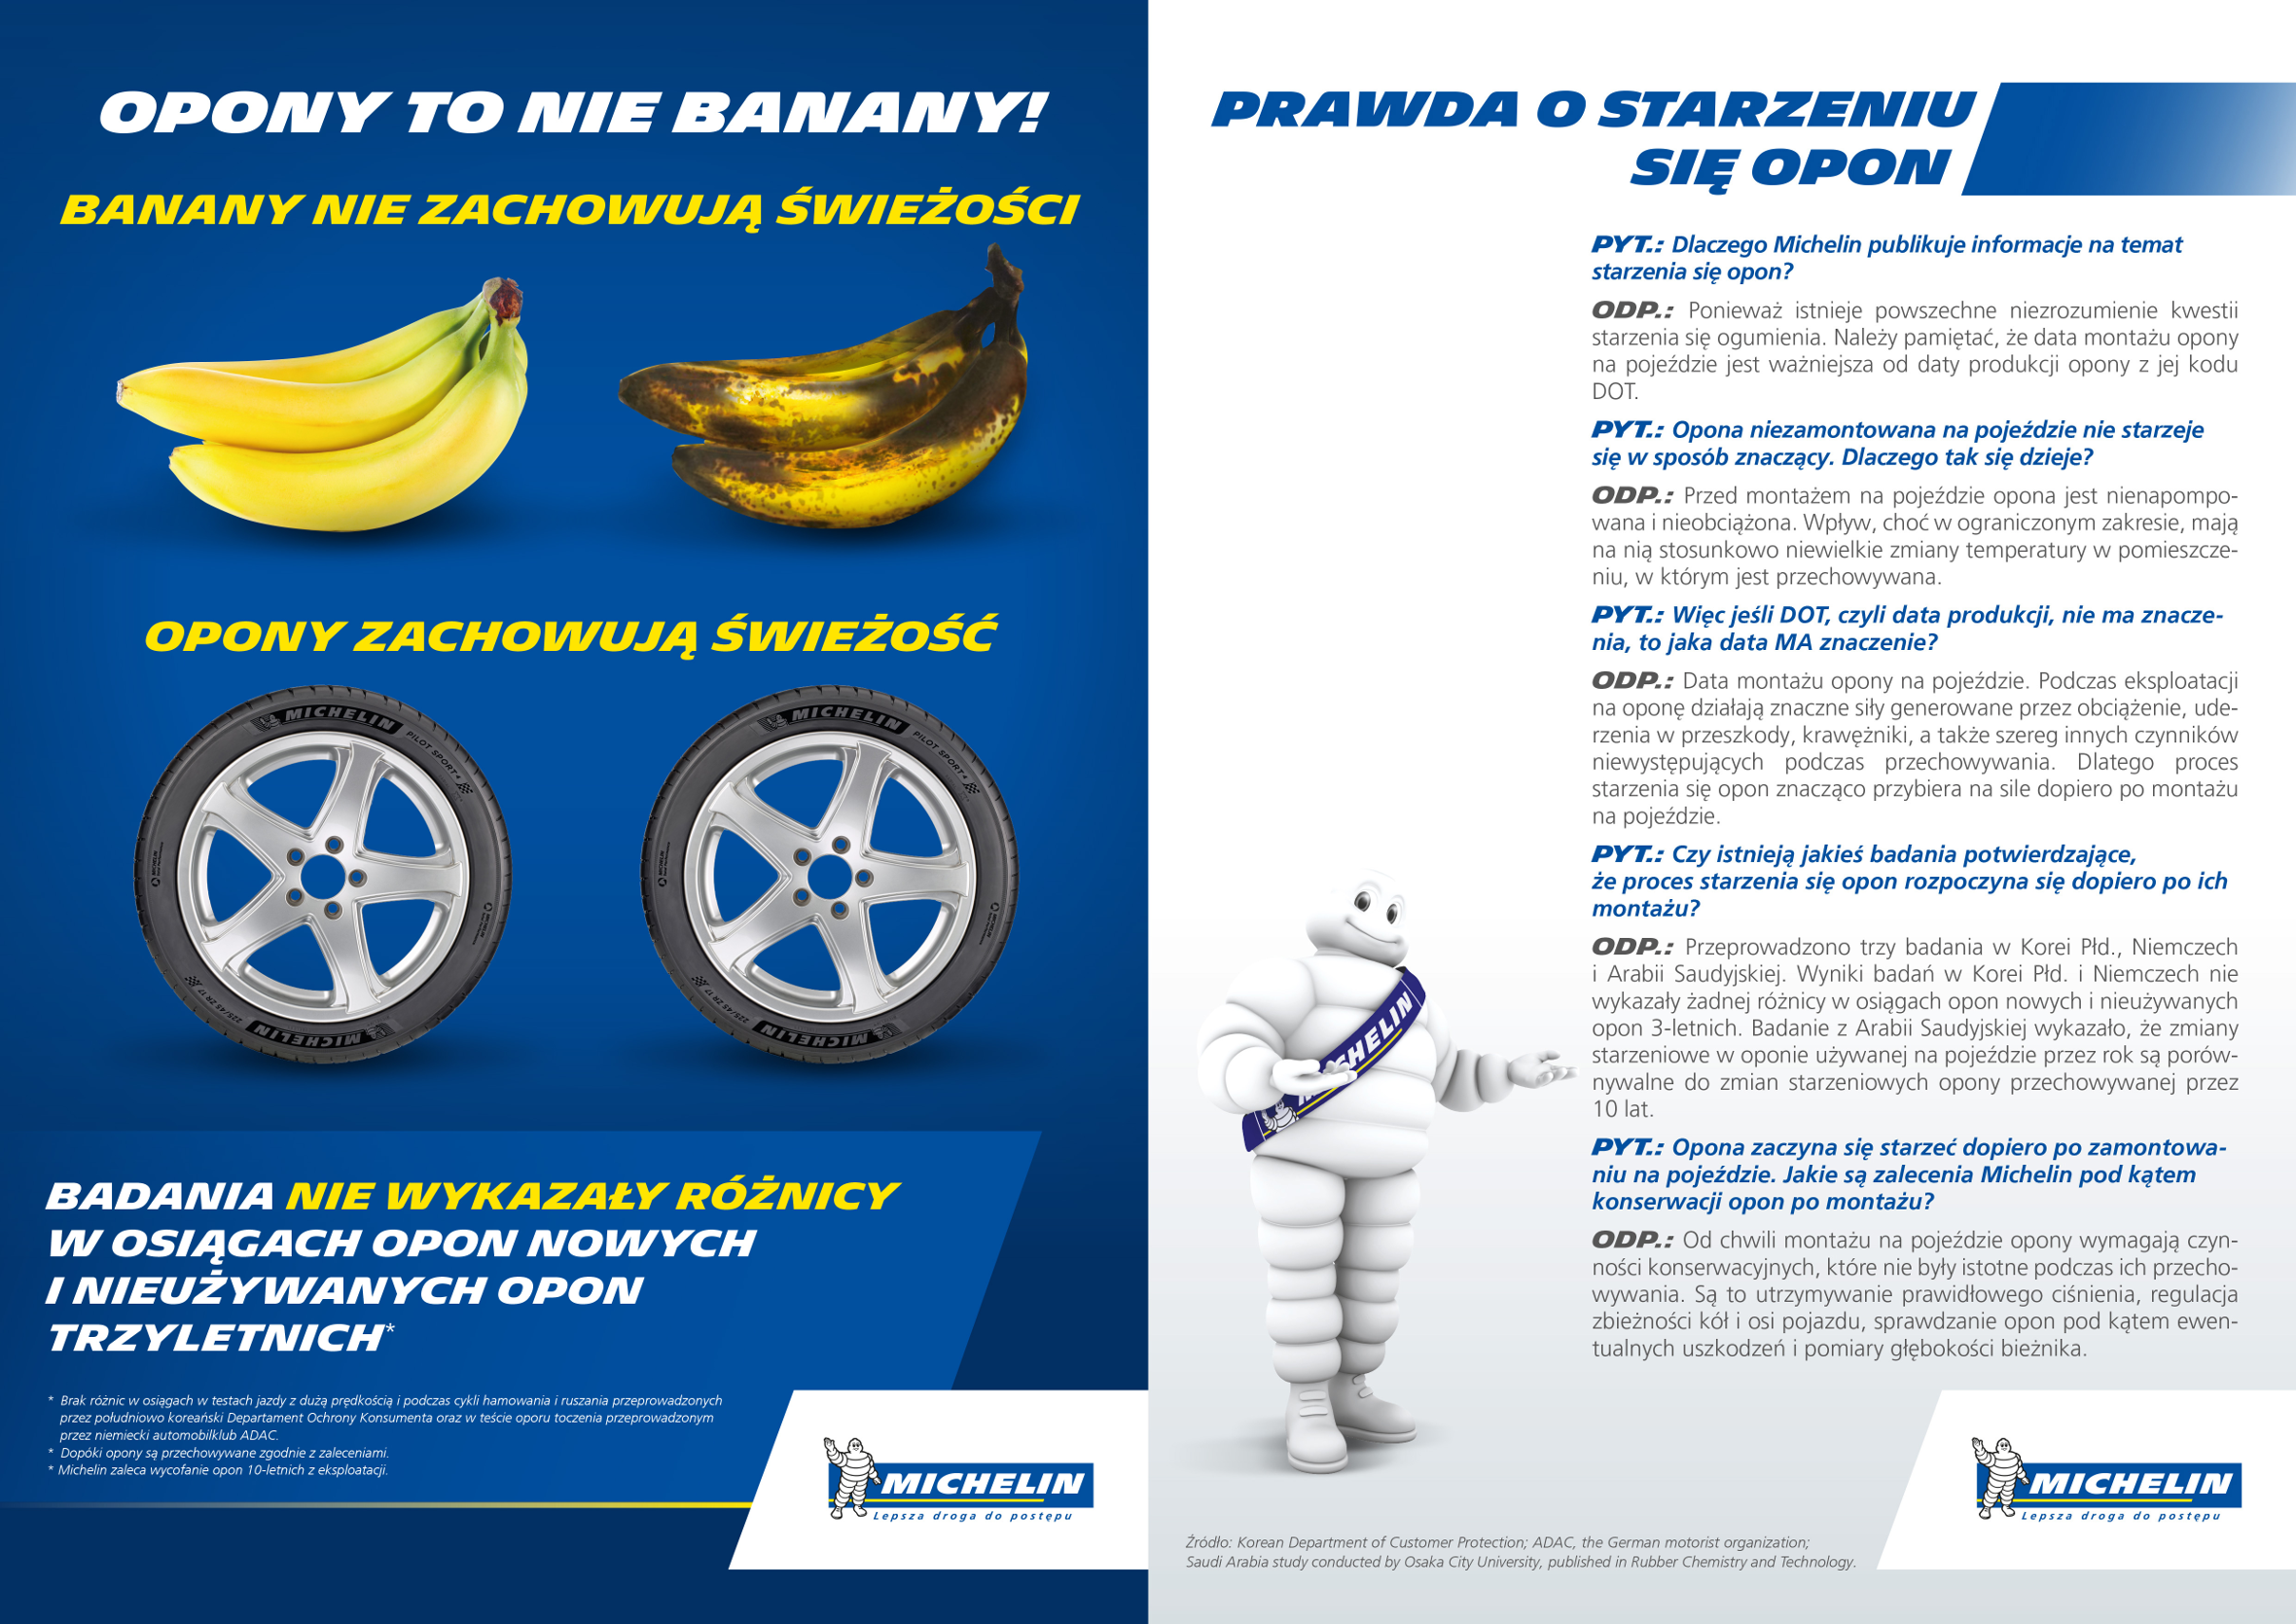 opony-to-nie-banany-michelin.png